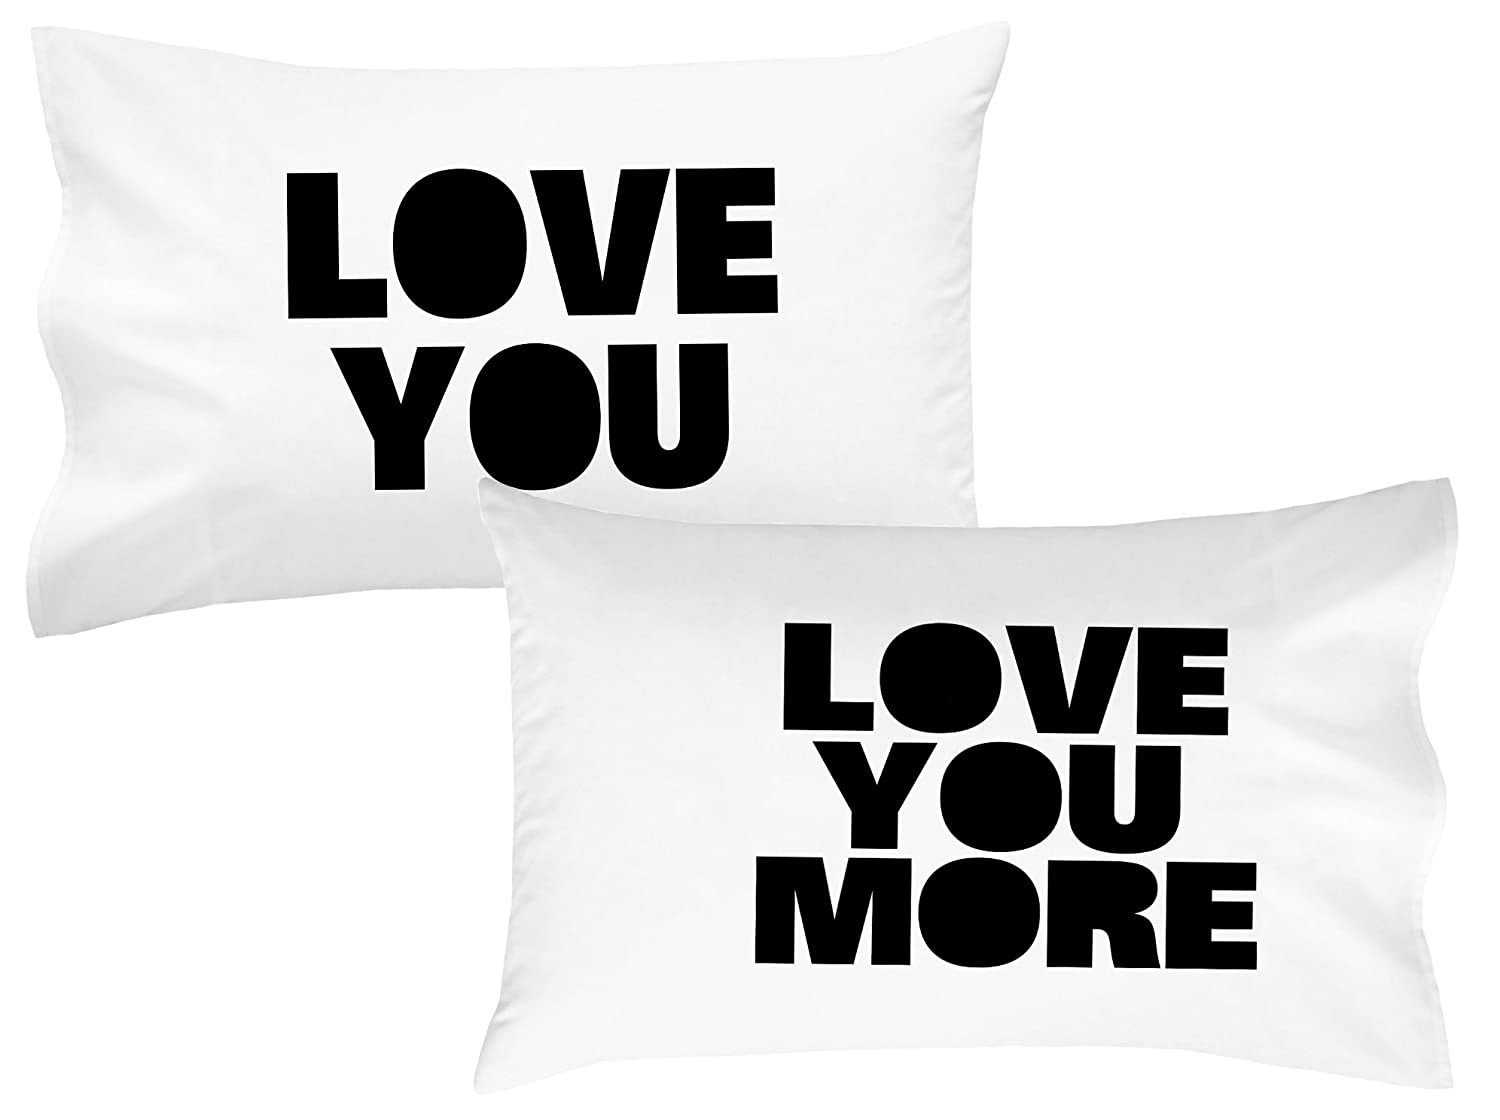 Oh, Susannah Love You Love You More Pillow Cases Luxury Soft Pillowcases You'll Love to Sleep on Wedding Engagement Gift Anniversary Gifts Birthday Presents for Couples (2 Top Quality Pillowcases)